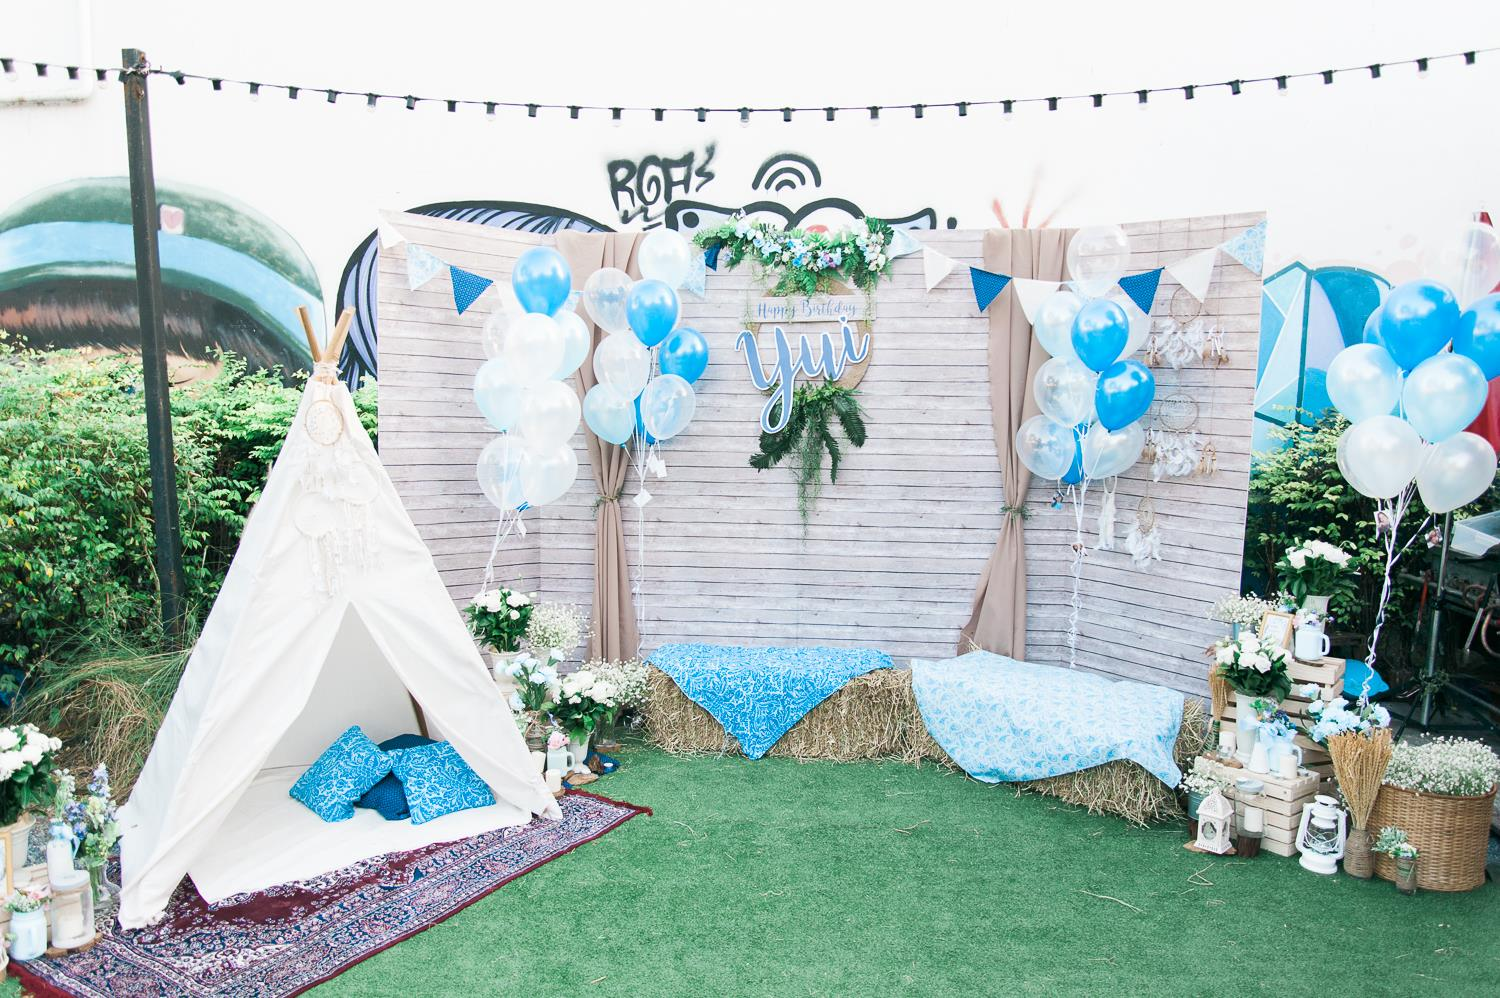 Bohemian theme party, idea for backdrop / photo corner / photobooth for your party, birthday, hennight, baby shower